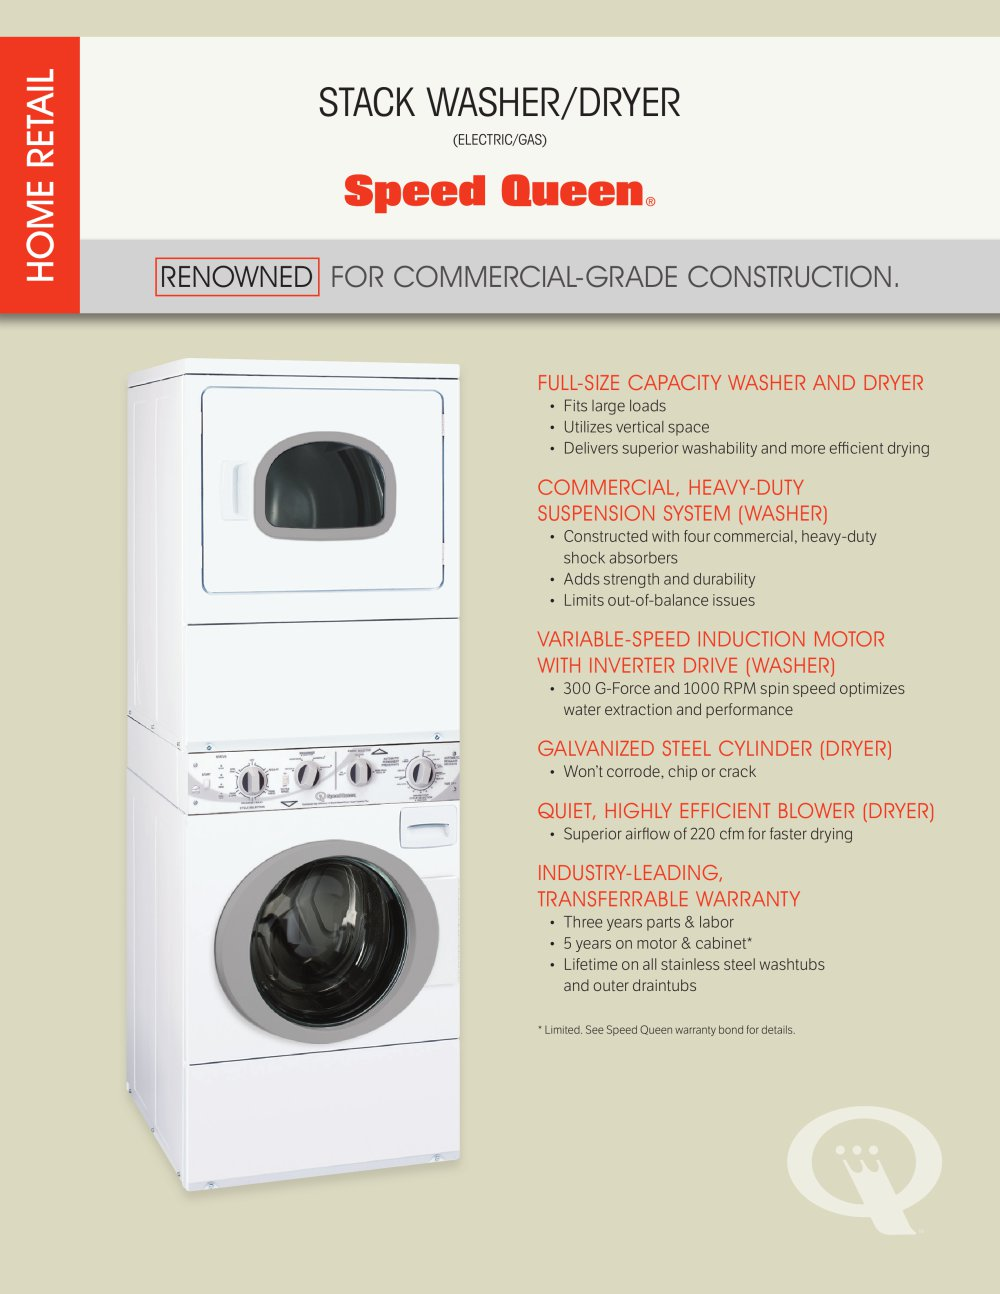 frontload stack washerdryer 1 2 pages